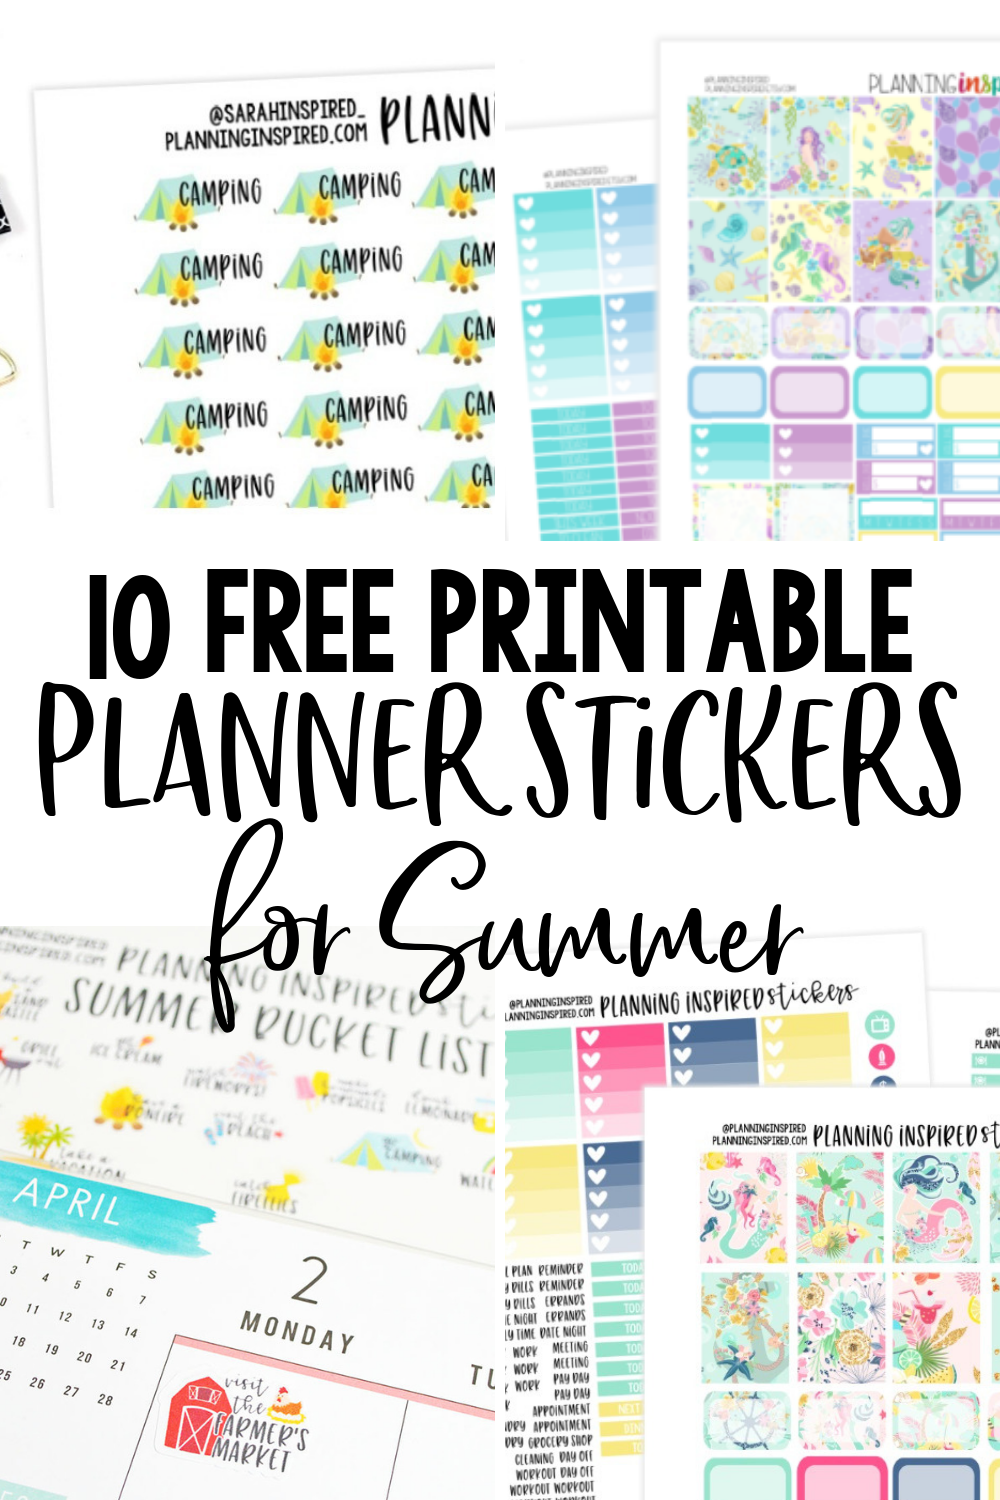 photograph regarding Free Printable Planners known as 10 Absolutely free Printable Planner Stickers for Summer time - Developing